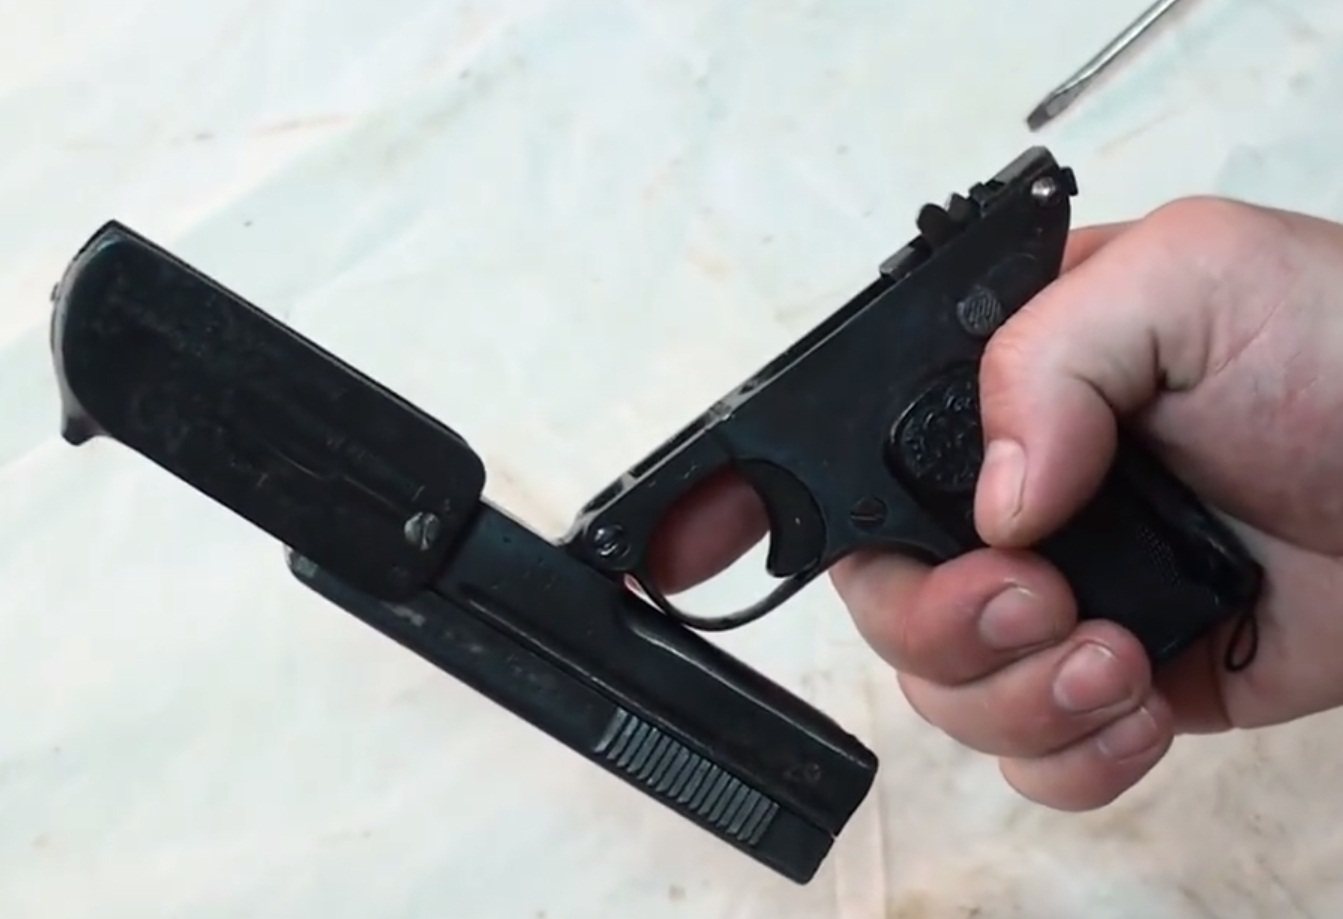 Disassembling 1907 Dreyse Pistol